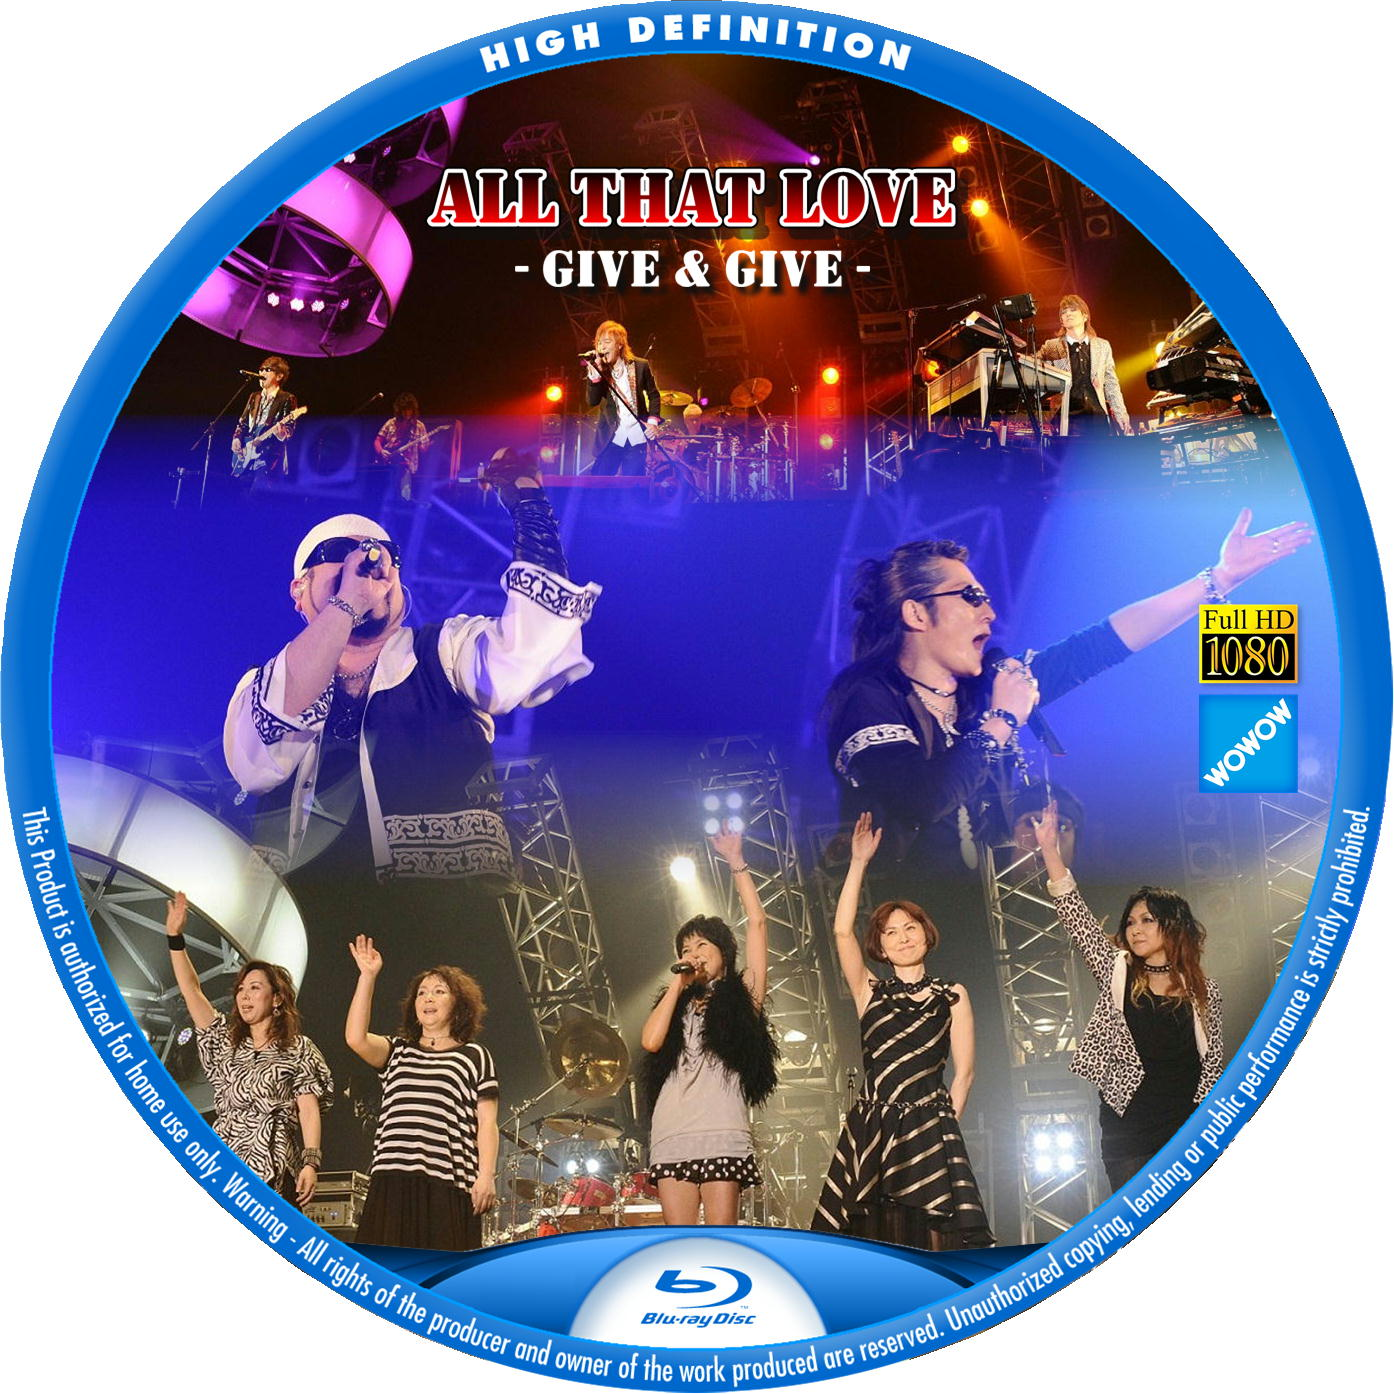 All That Love - GIVE & GIVE - BDラベル